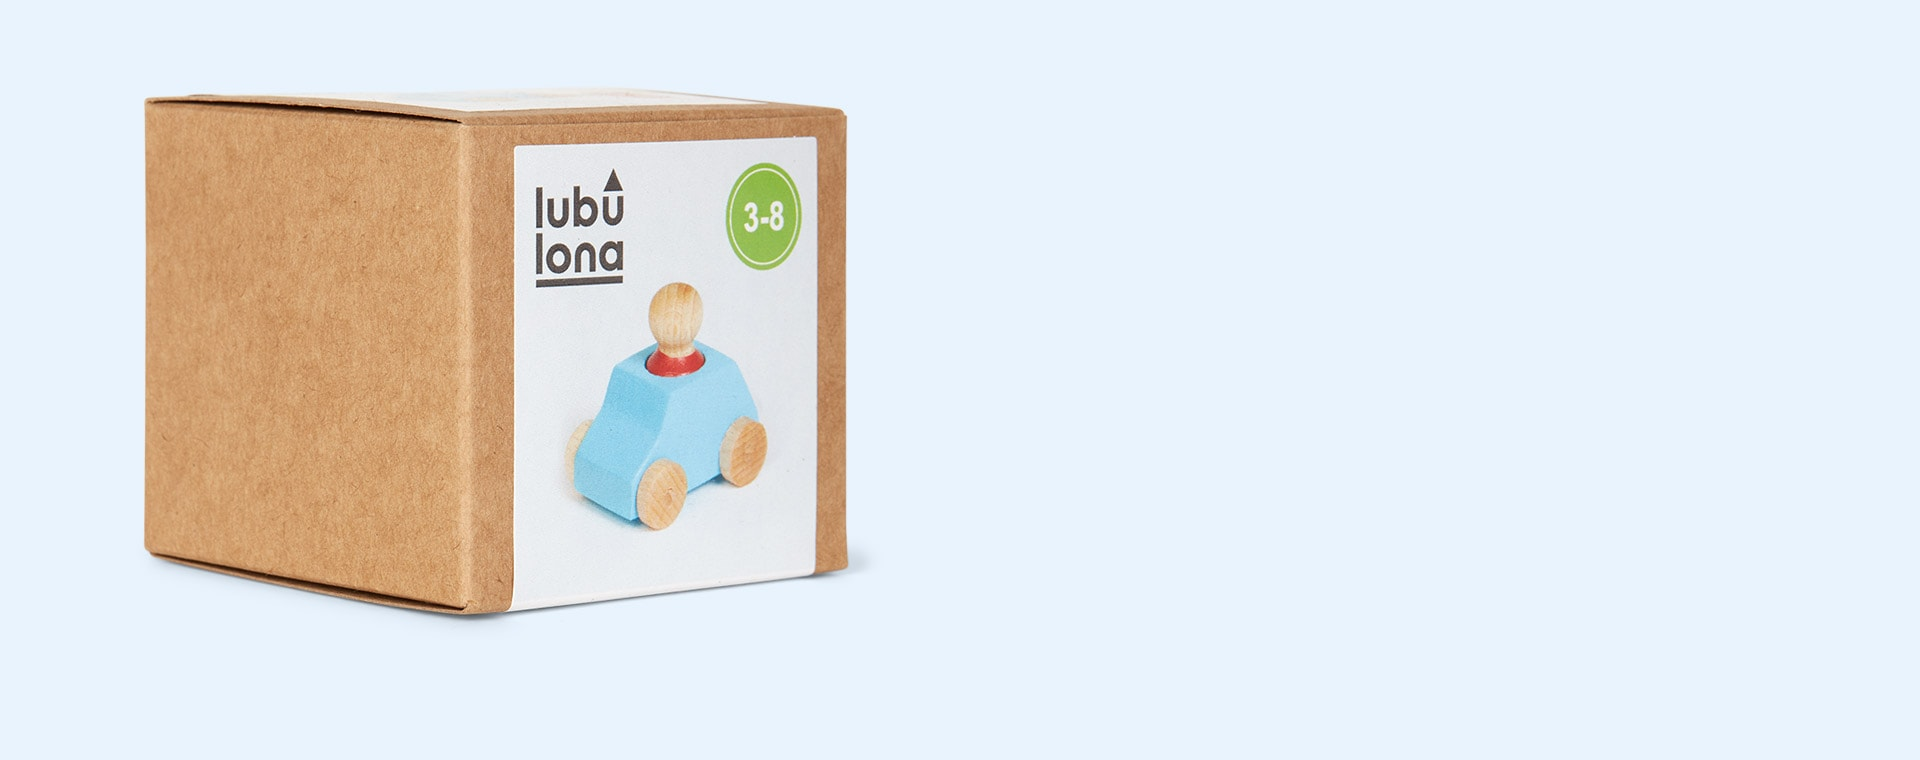 Turquoise Lubulona Wooden Toy Car